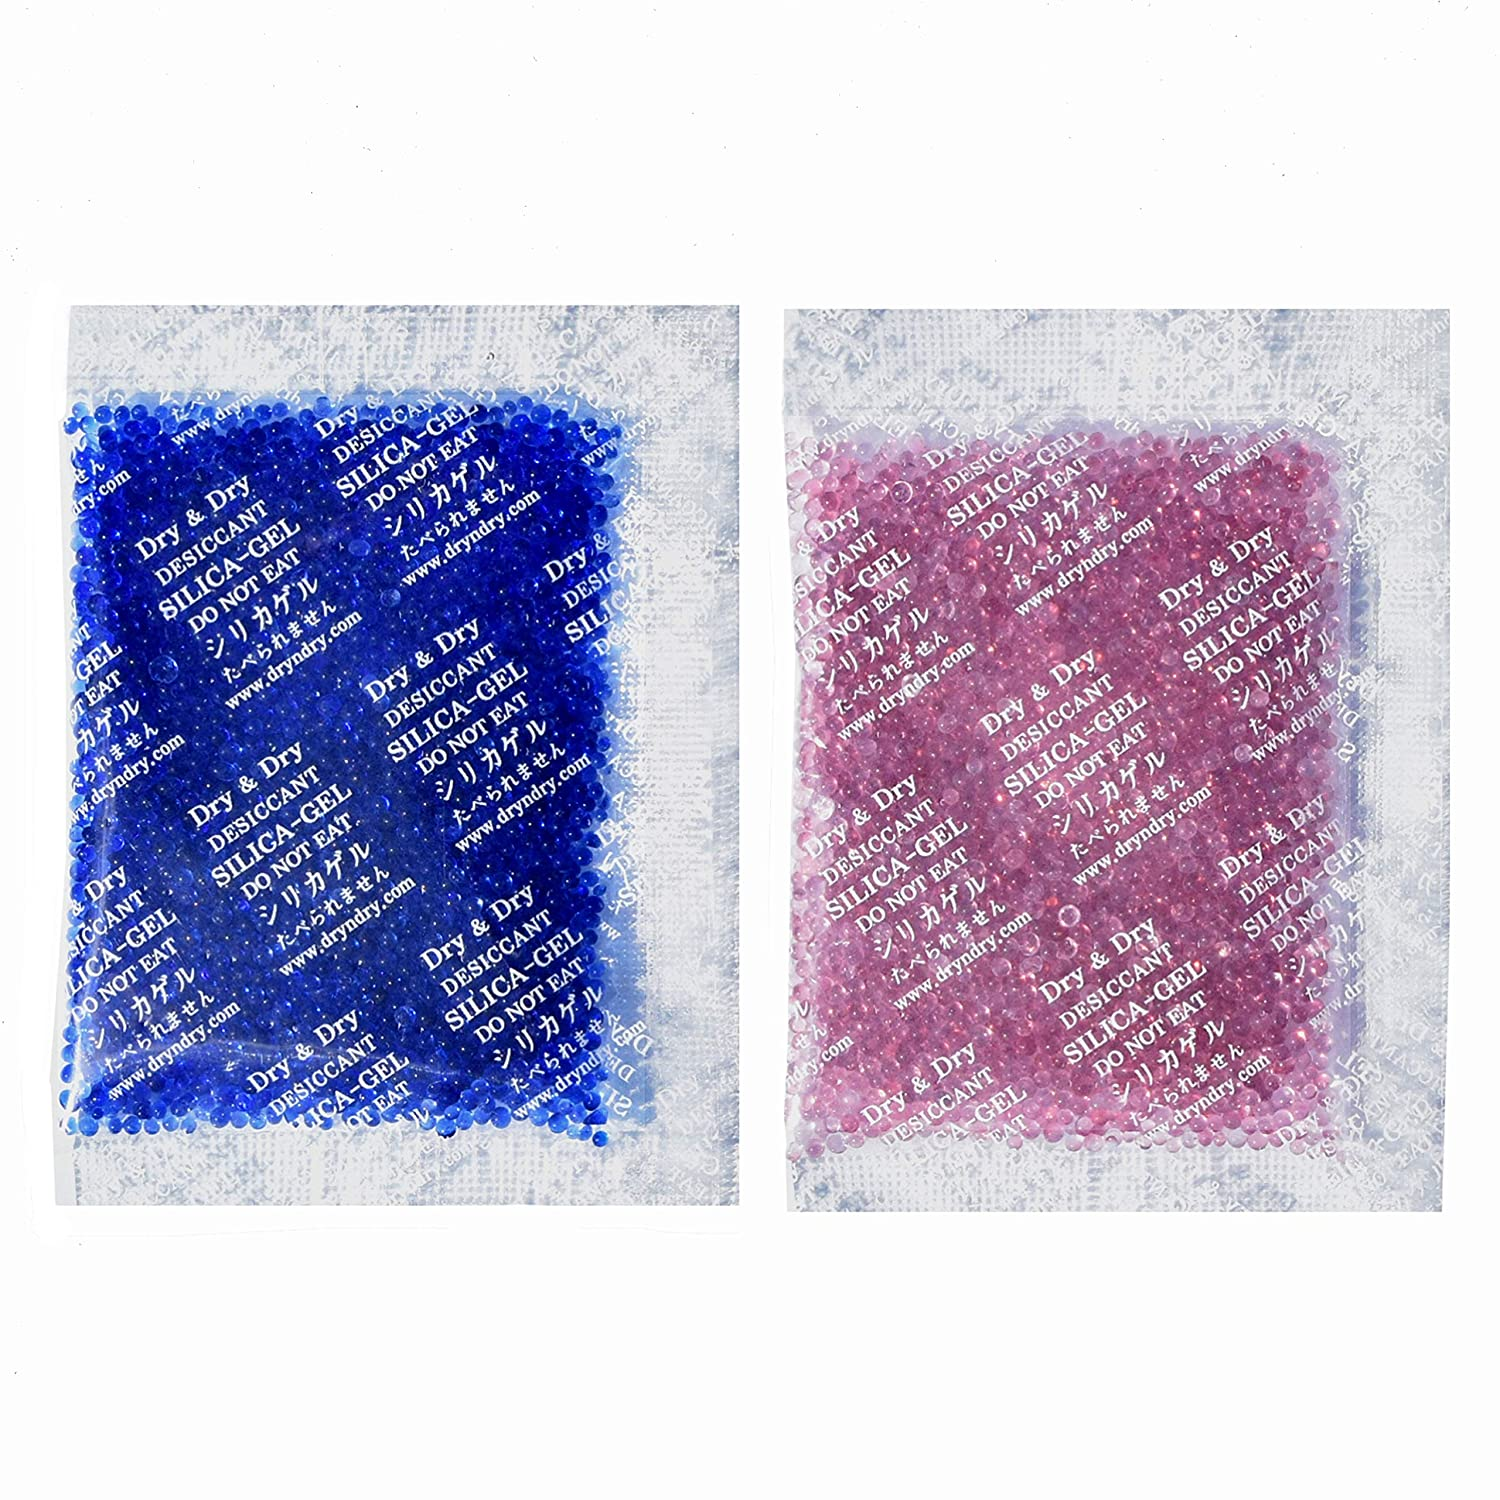 Dry & Dry 20 Gram [30 Packets] Premium Blue Indicating(Blue to Pink) Silica Gel Packets Desiccant Dehumidifier - Rechargeable Silica Packets for Moisture Absorber